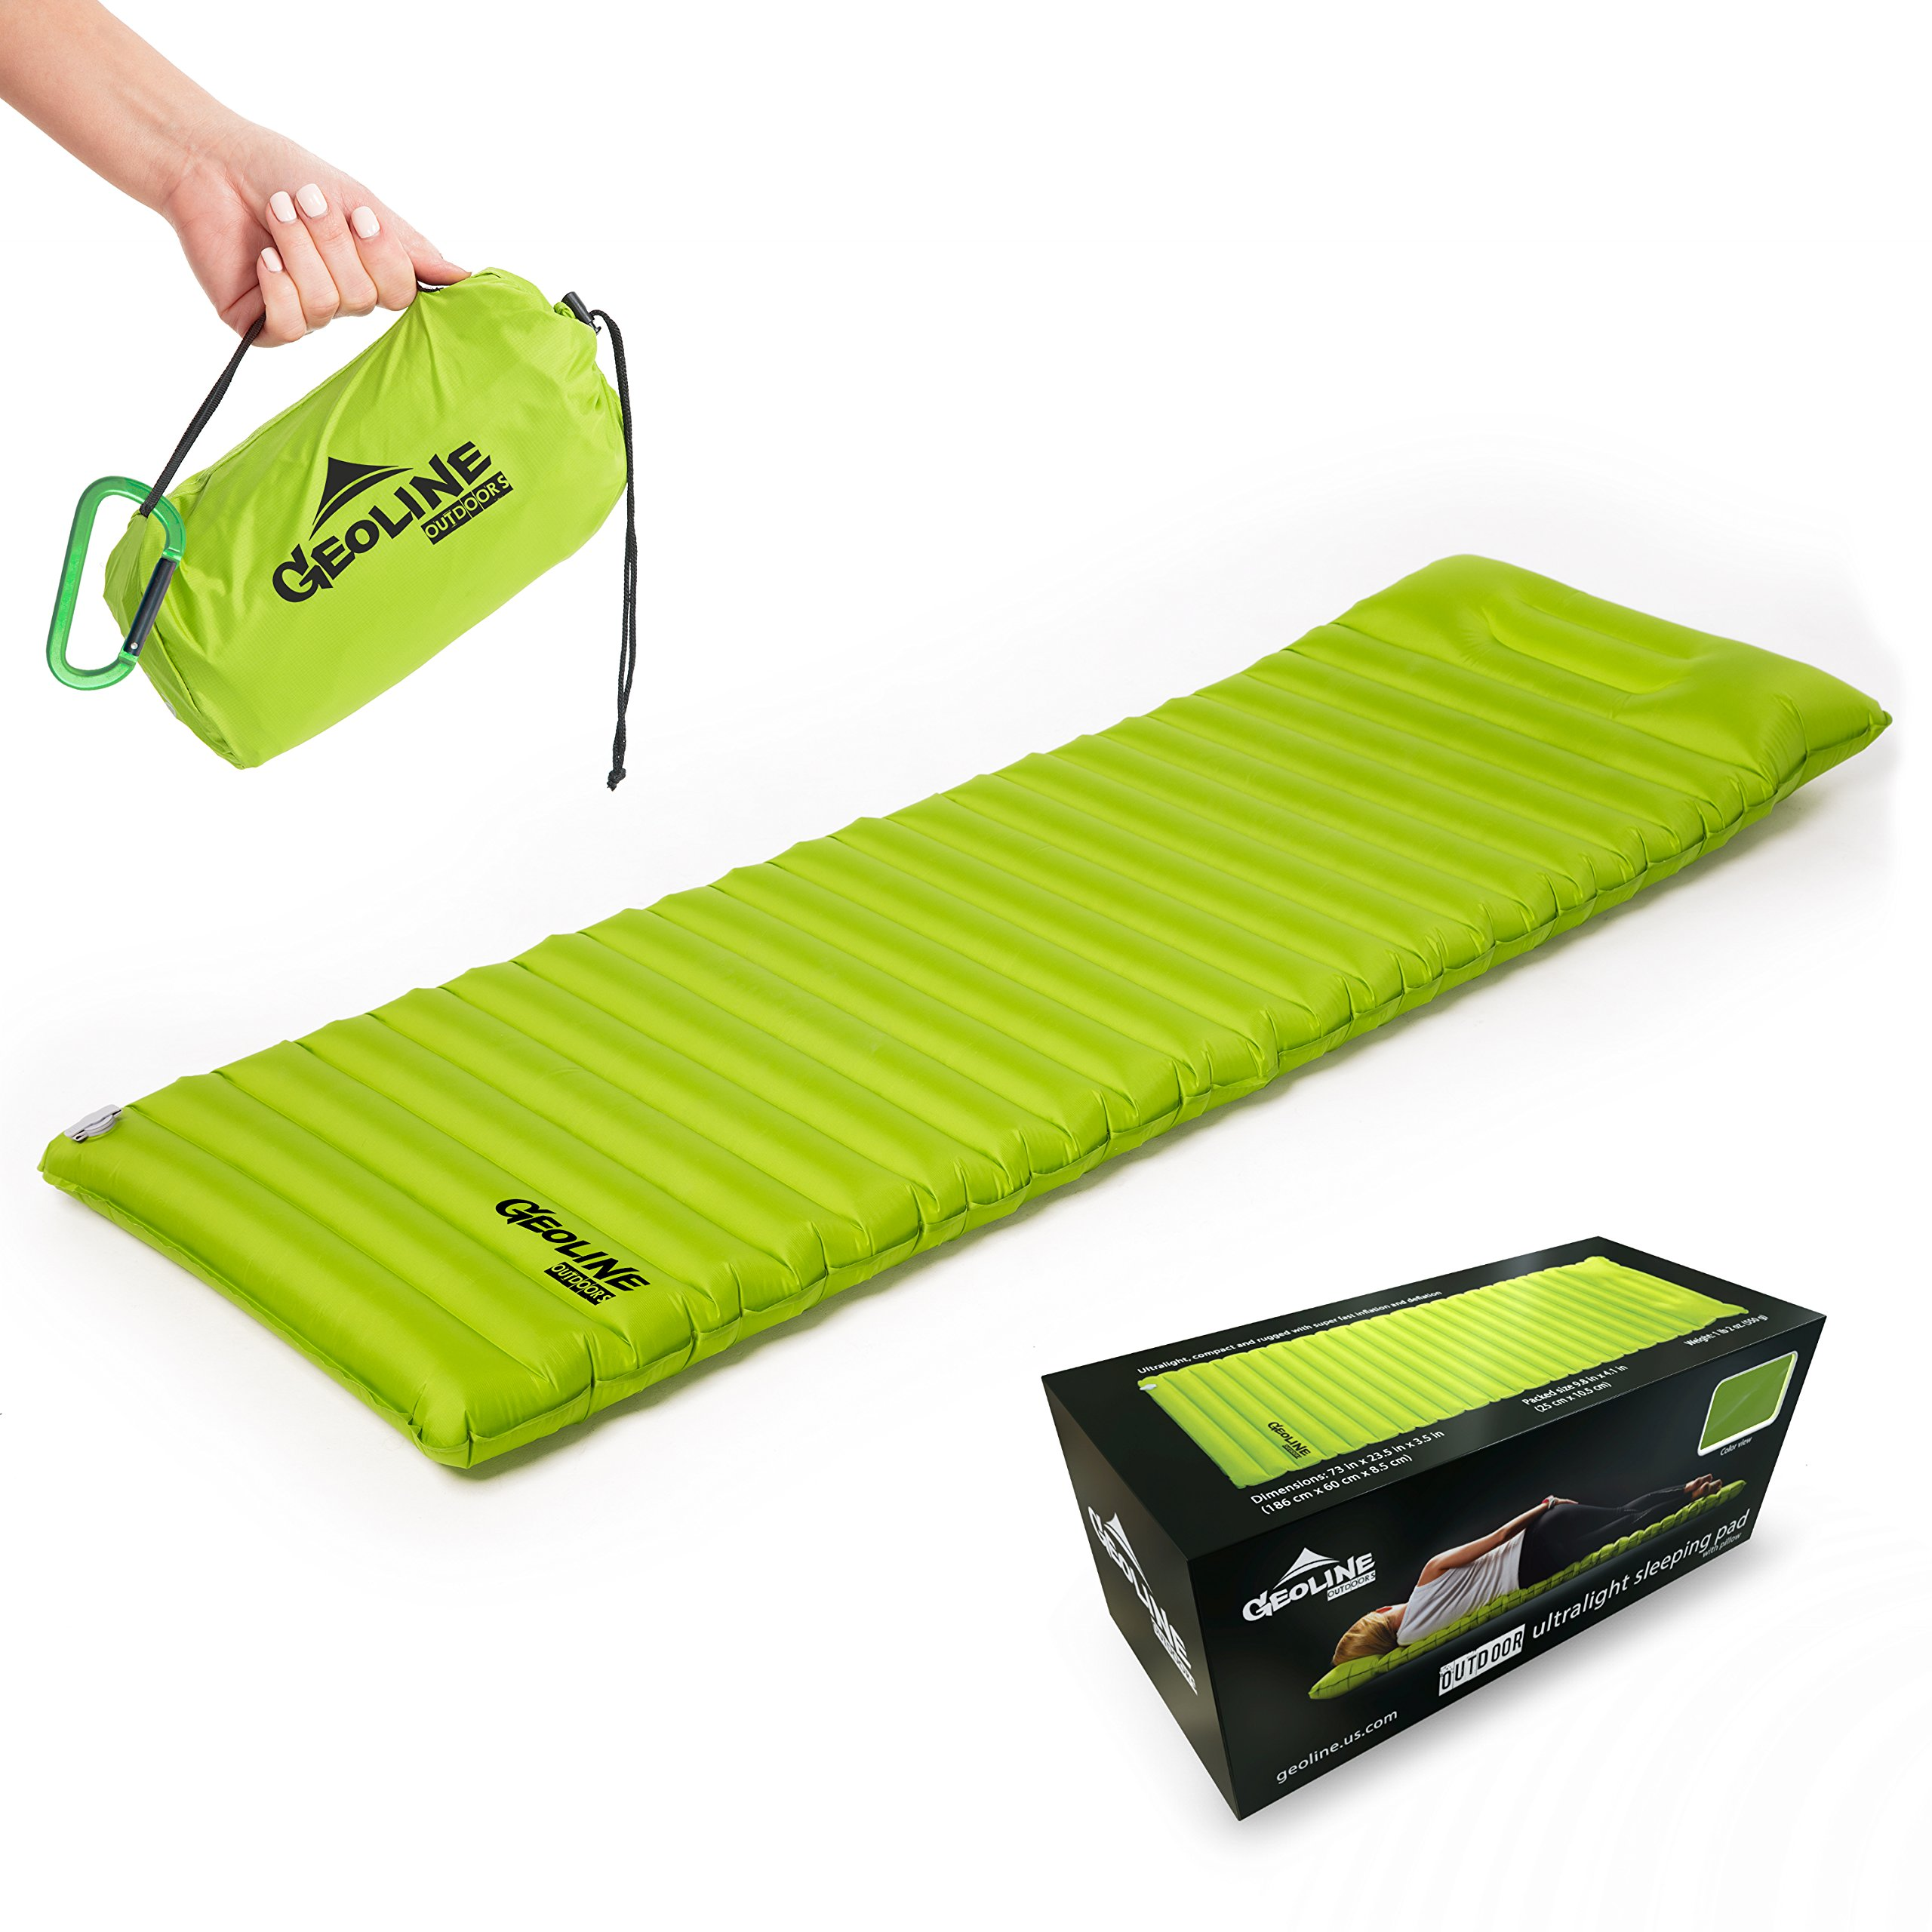 Geoline Outdoors Inflatable Sleeping Pad With Pillow